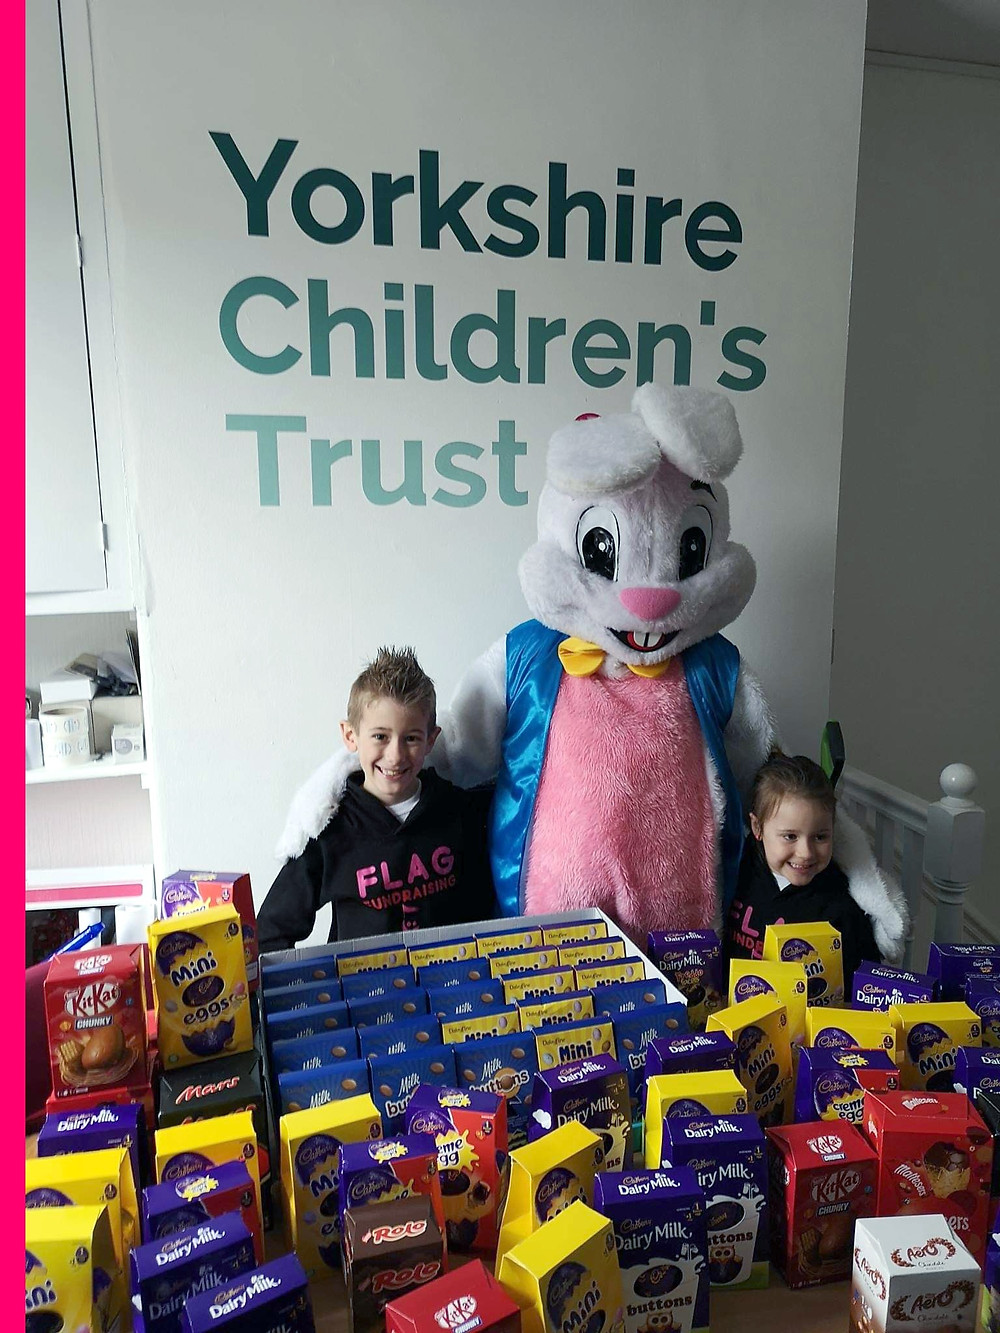 Flag Fundraising support Yorkshire Children's Trust, a local charity, helping local children